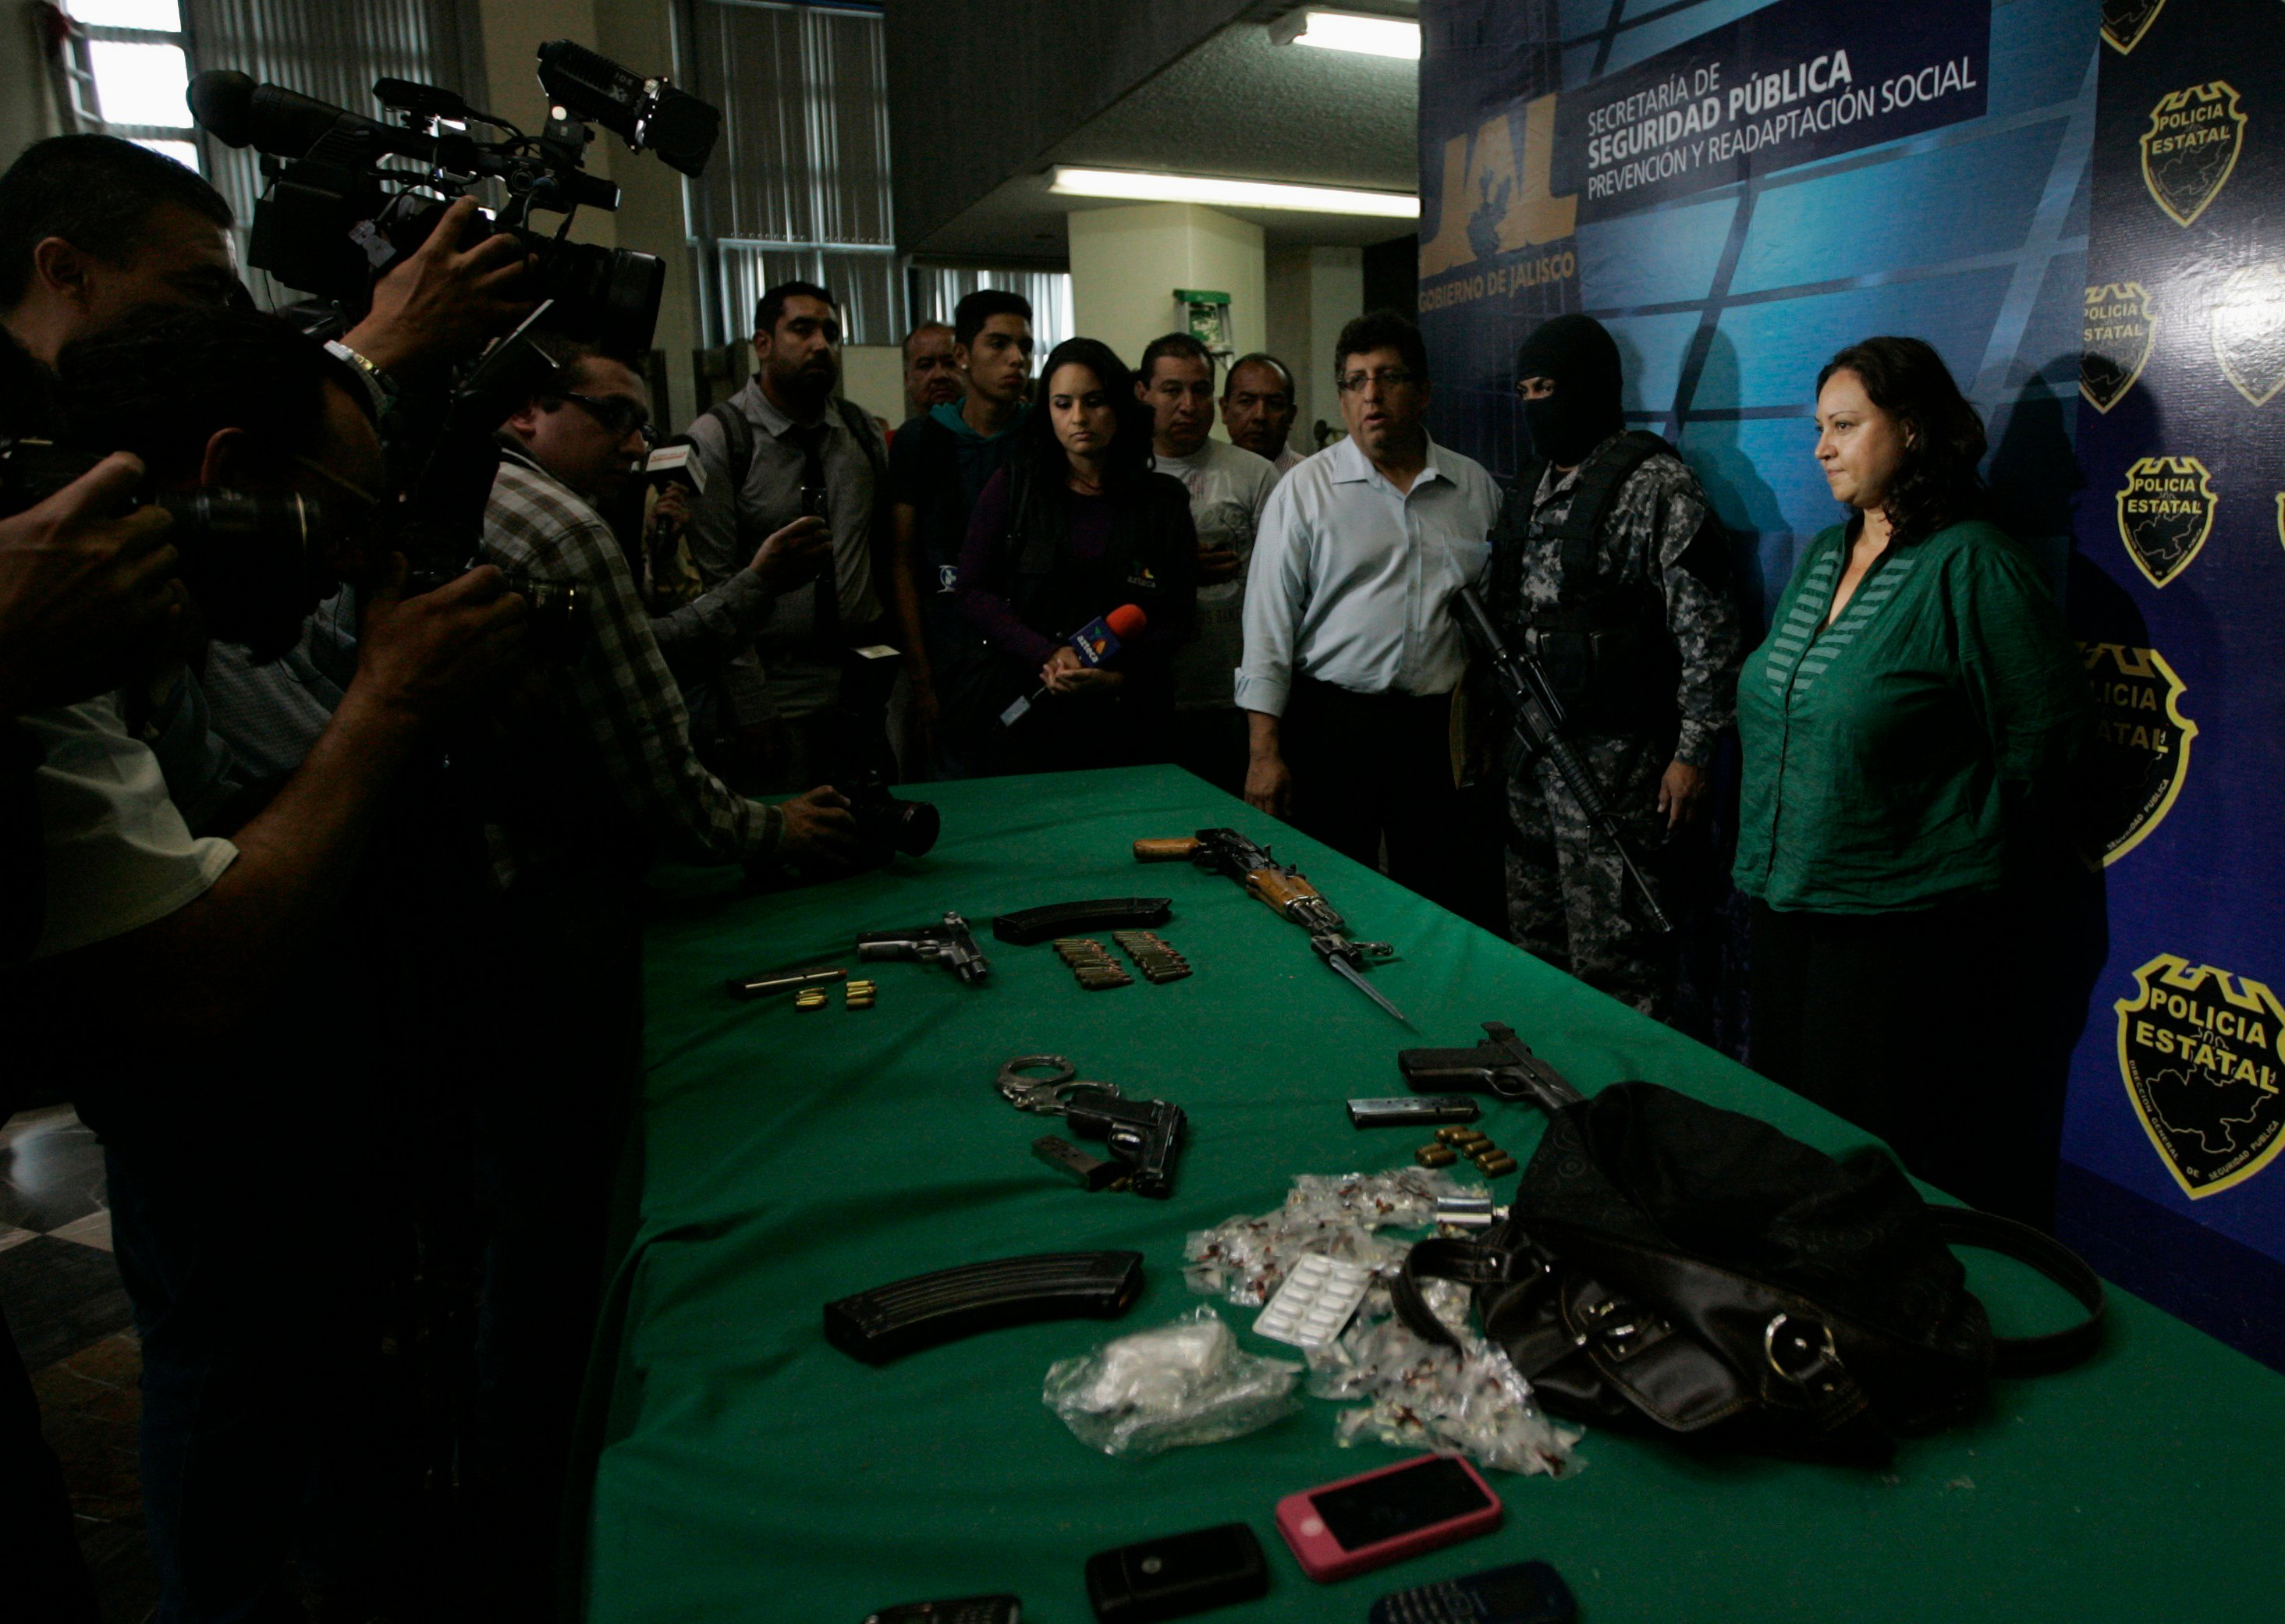 Carrillo Ochoa, leader of the Jalisco Nueva Generacion criminal cartel (CJNG) in the state of Jalisco, looks on as she is presented to the media in Guadalajara